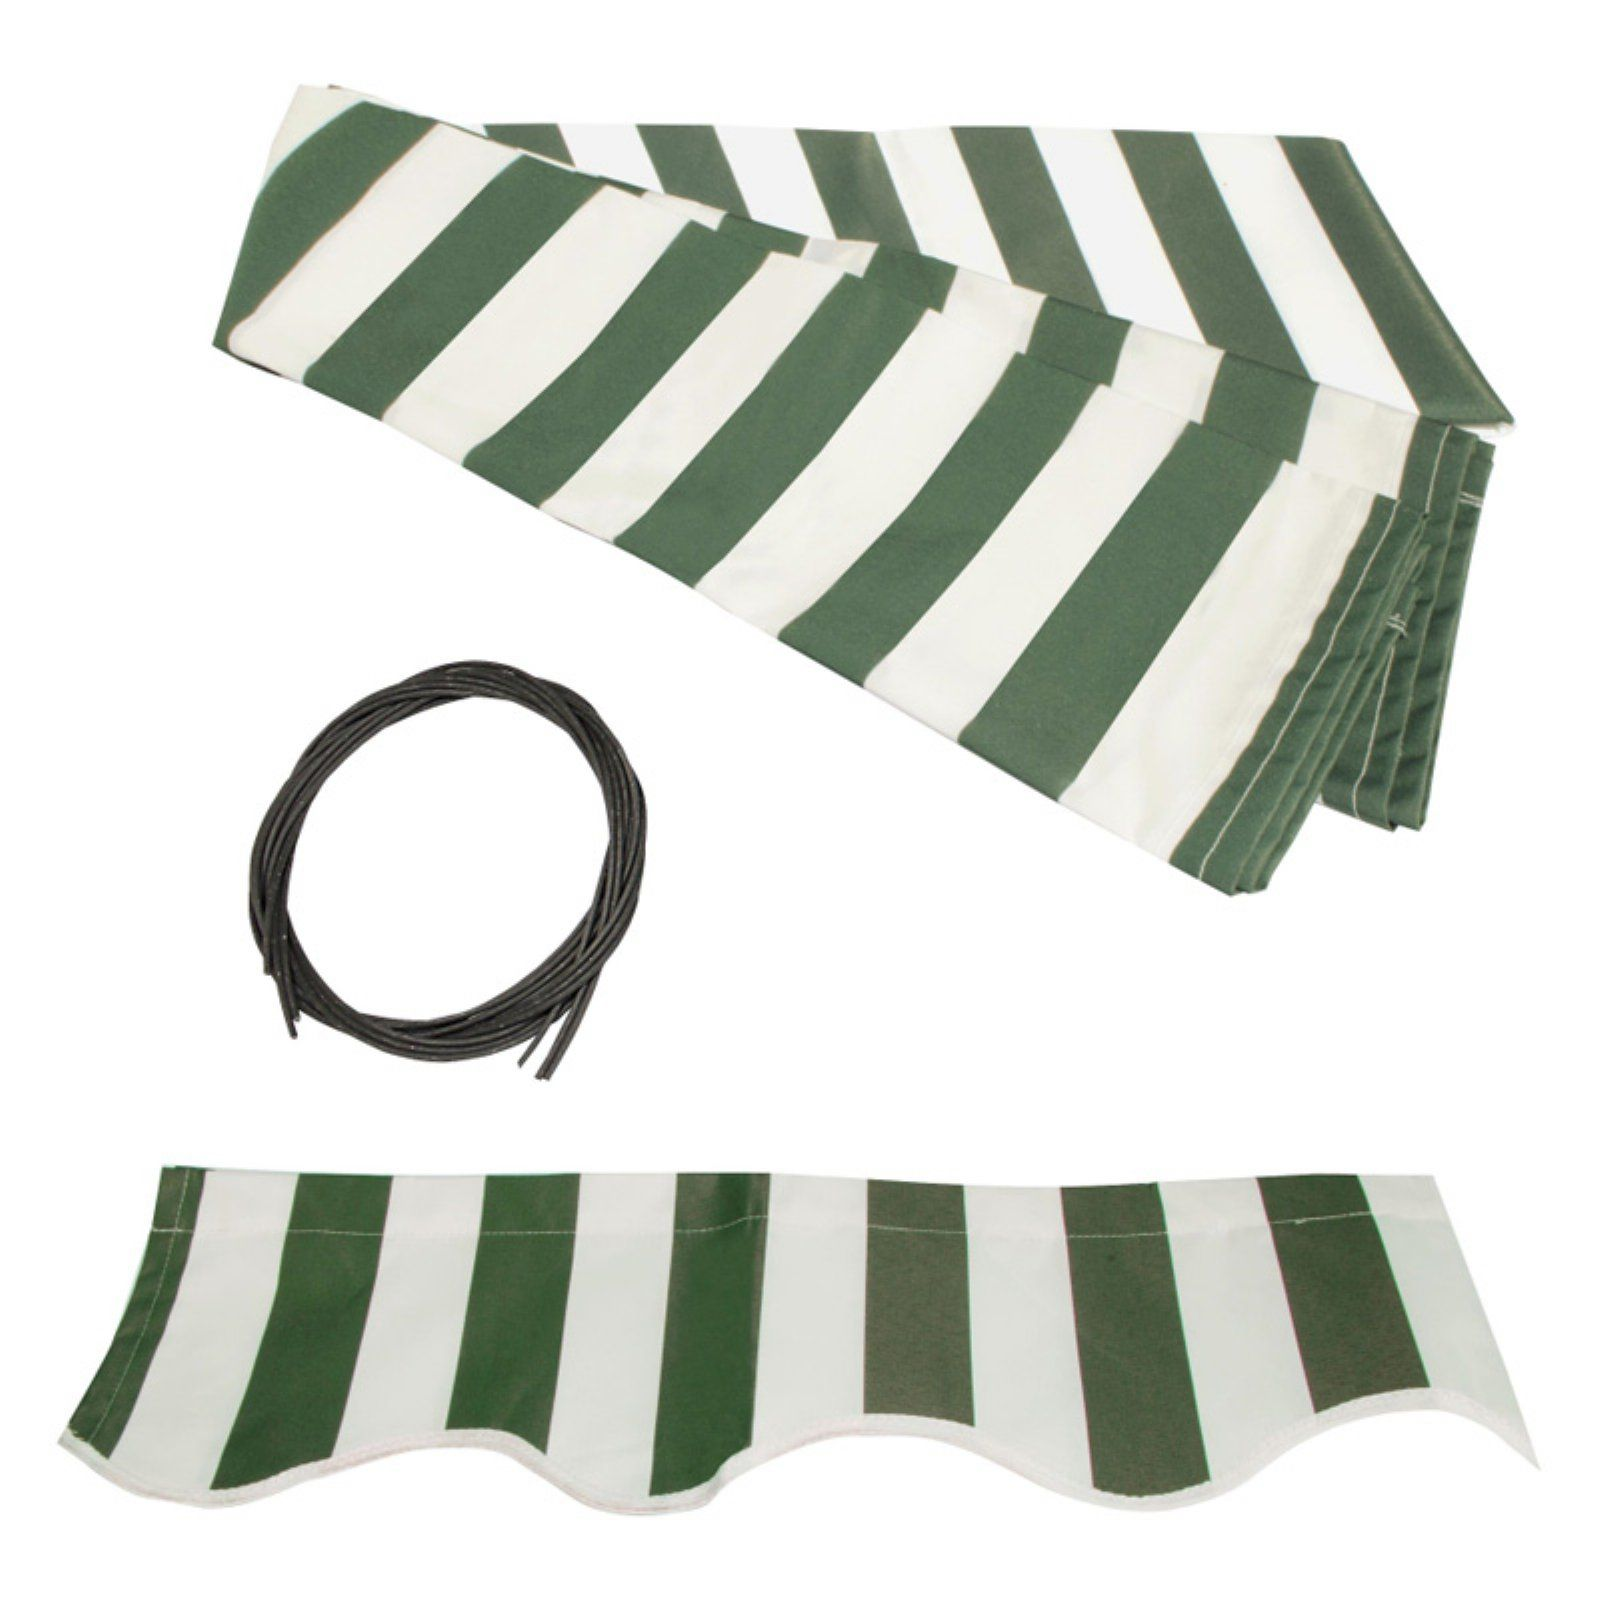 Aleko 20 X 10 Ft Retractable Awning Fabric Replacement Fabric Awning Aleko Awning Retractable Awning